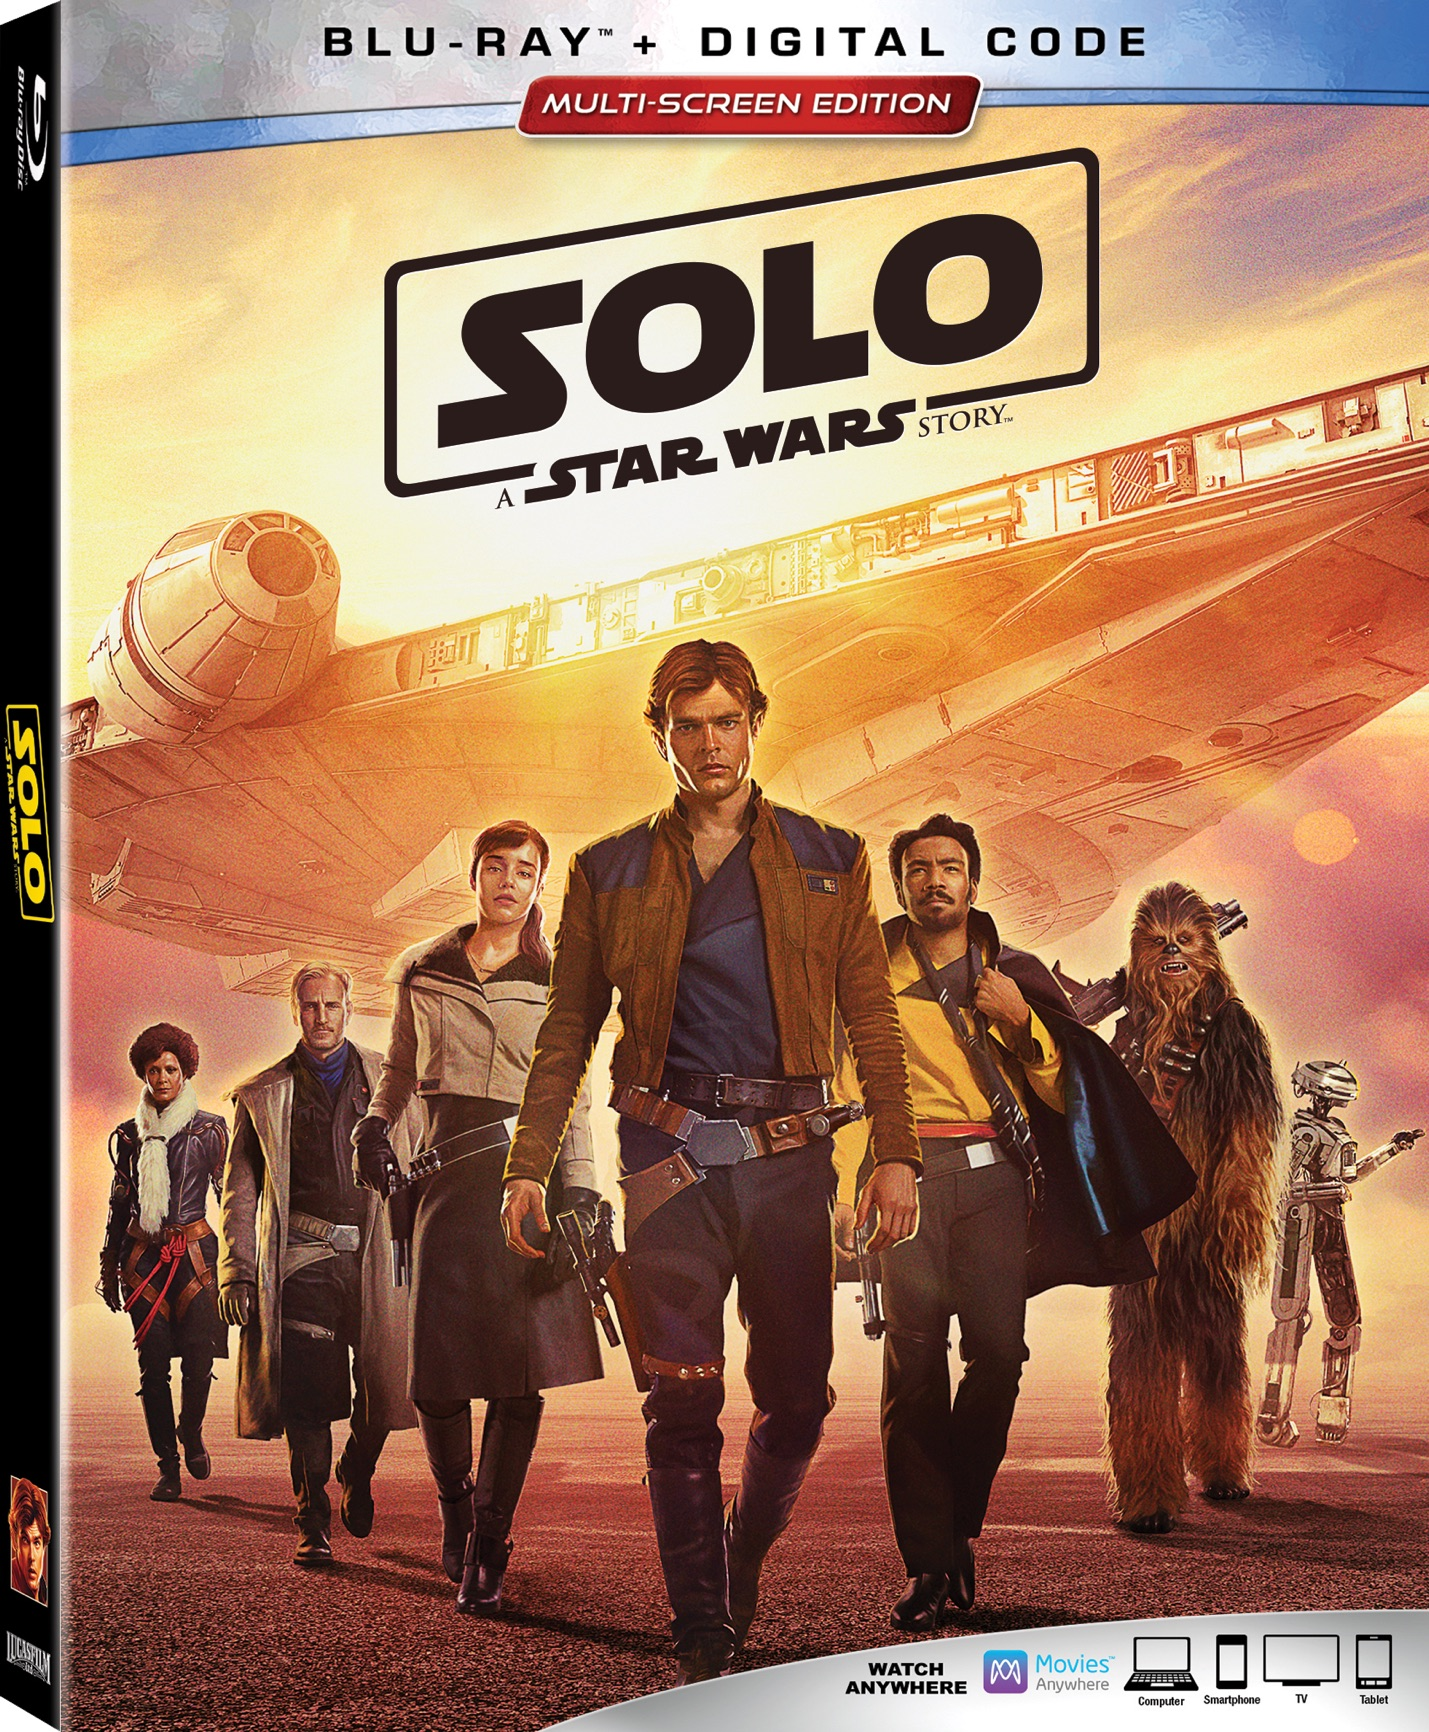 SOLO: A Star Wars Story #SOLO #StarWars #movie #giveaway #ad